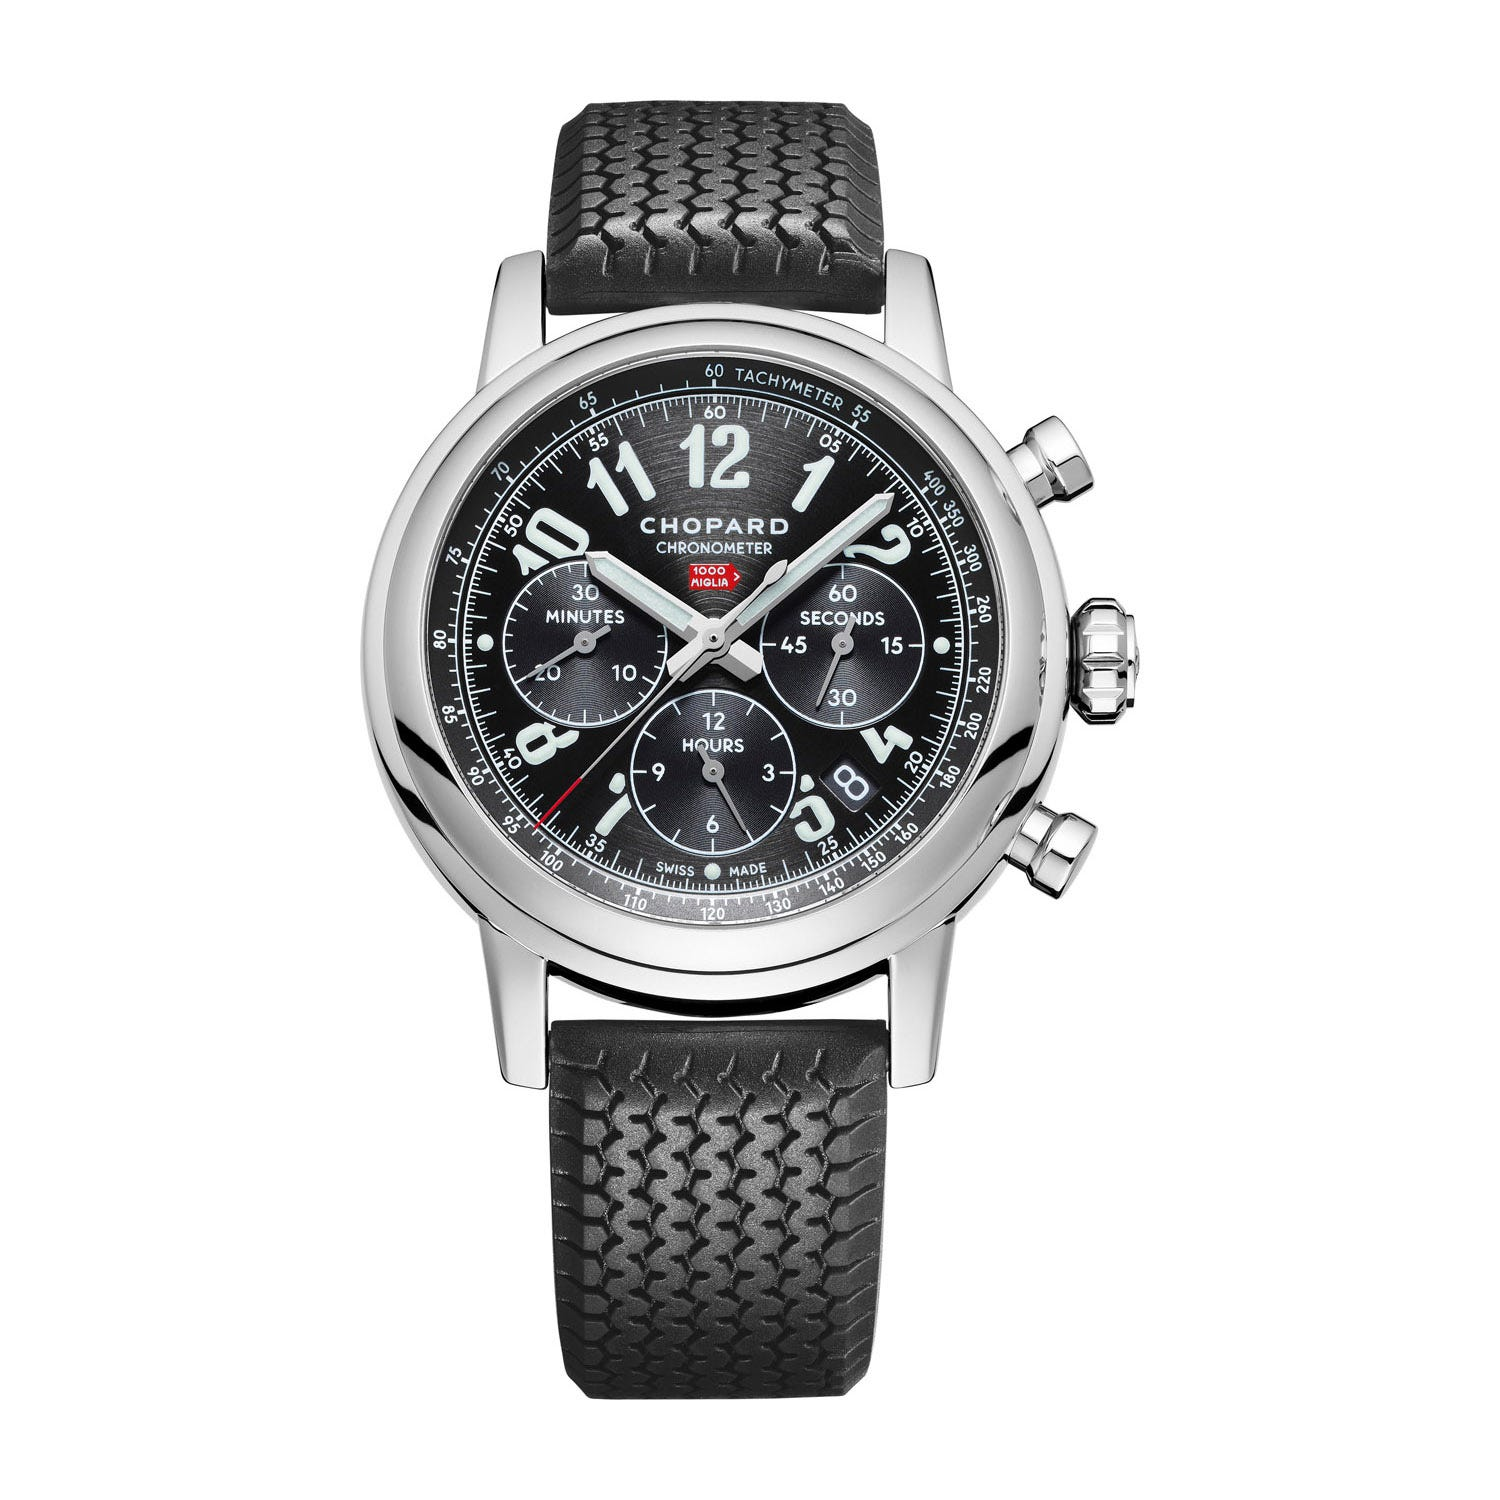 Chopard Mille Miglia Automatic Chronograph Black Dial Men's Watch